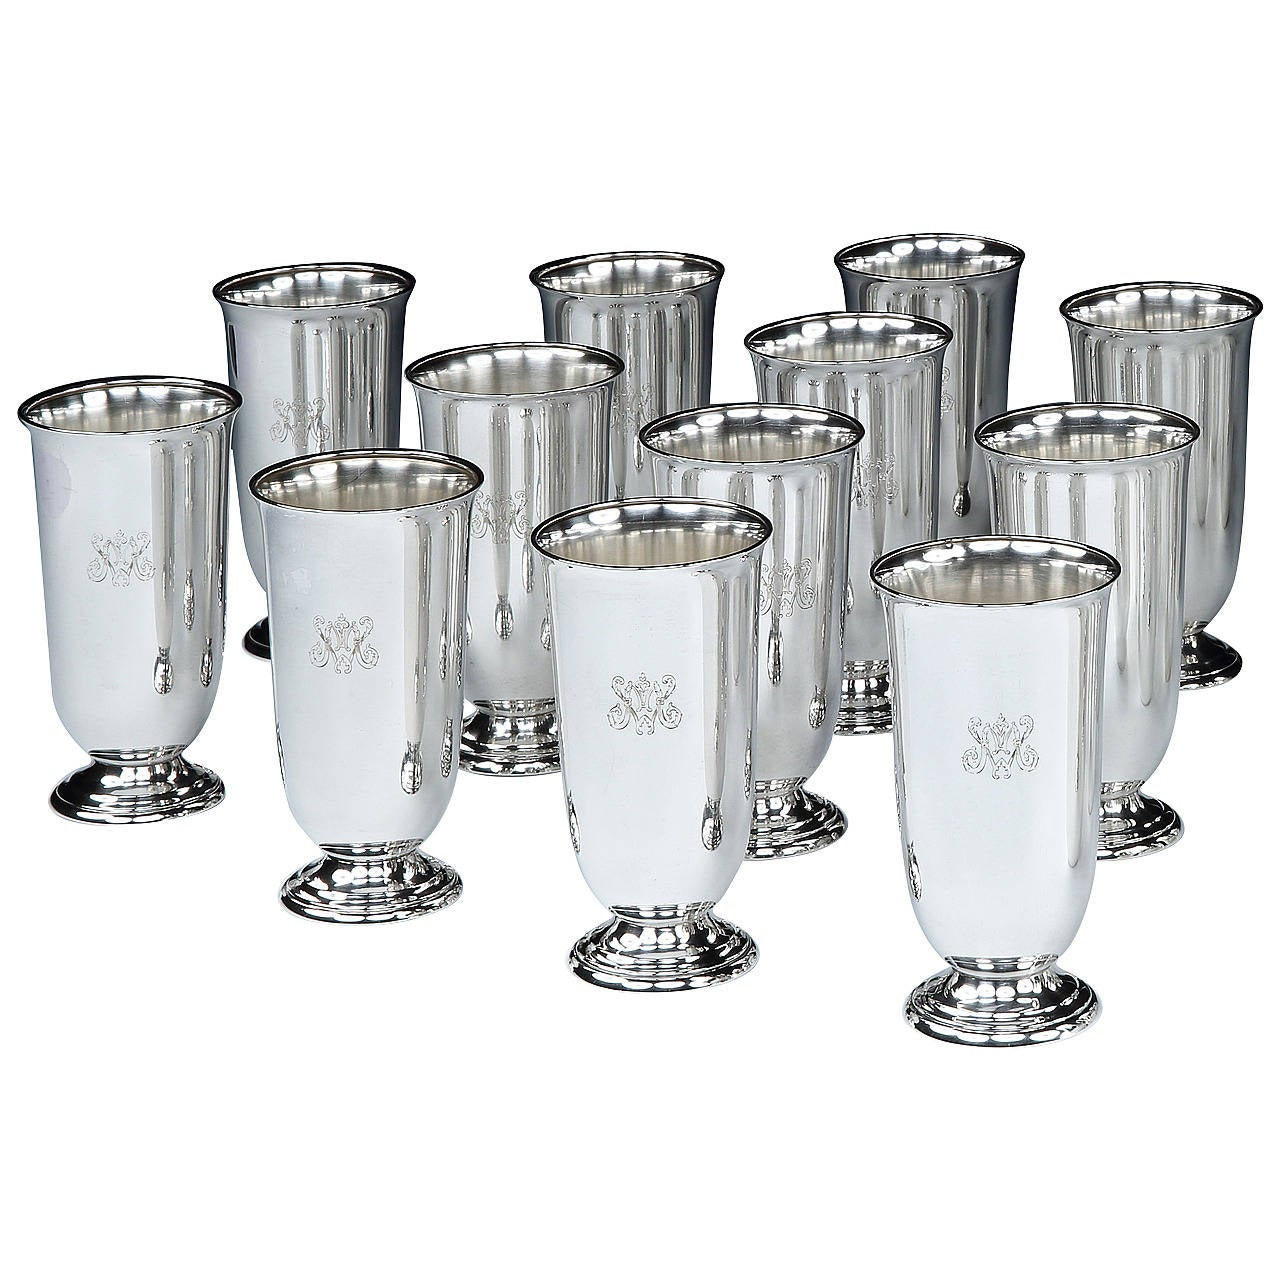 12 Sterling Silver Julep Cups or Goblets